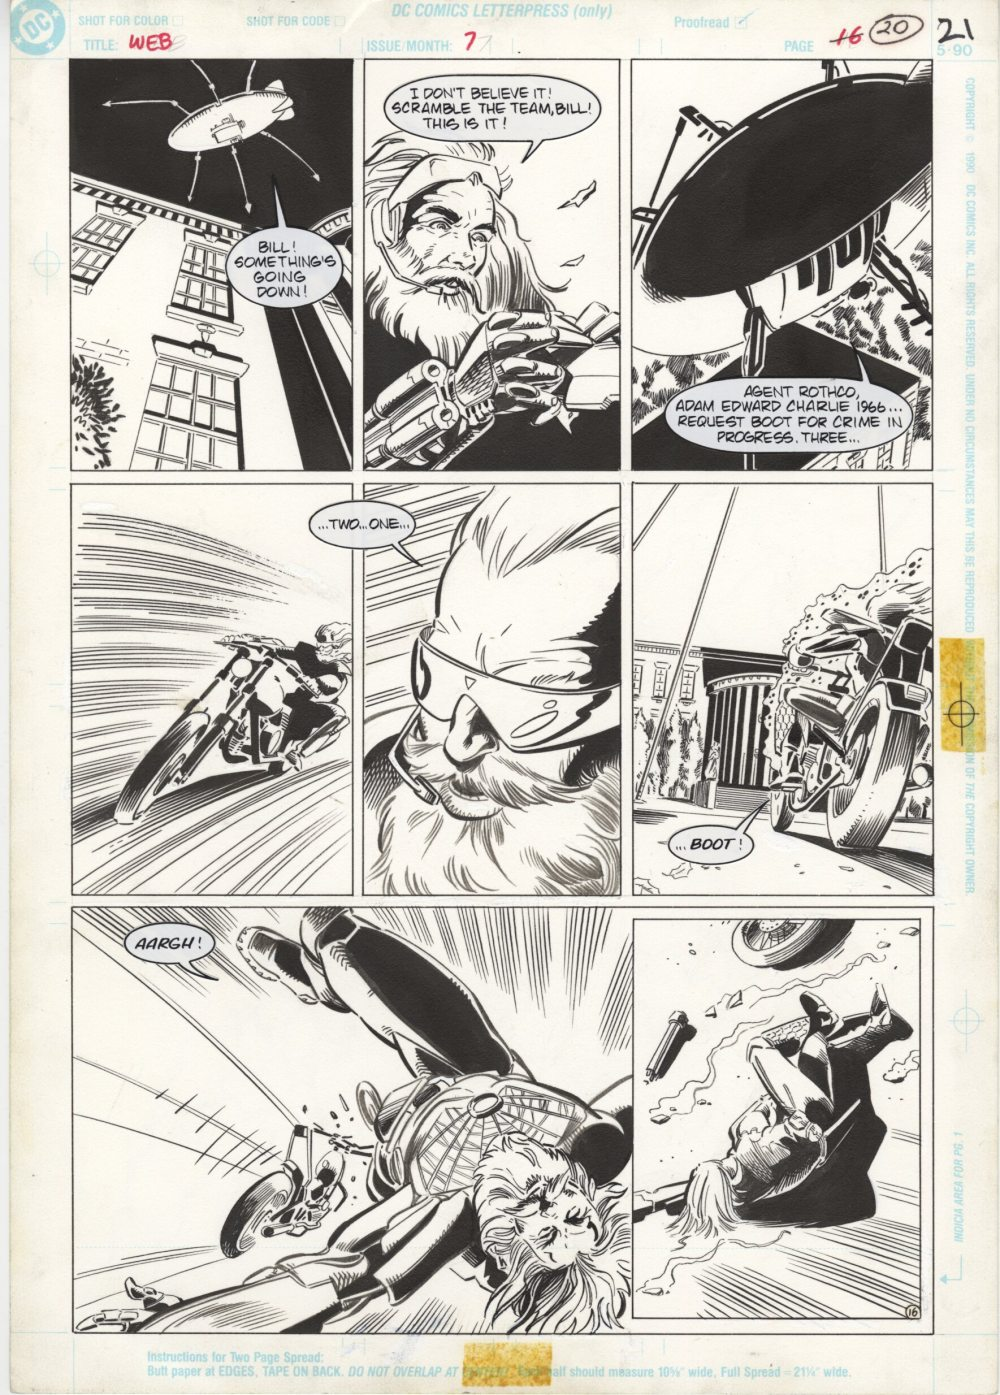 The Web #7, page 21 - Original Comic Art - Tom Artis, Bill Wray, Impact, DC Comics, 1992